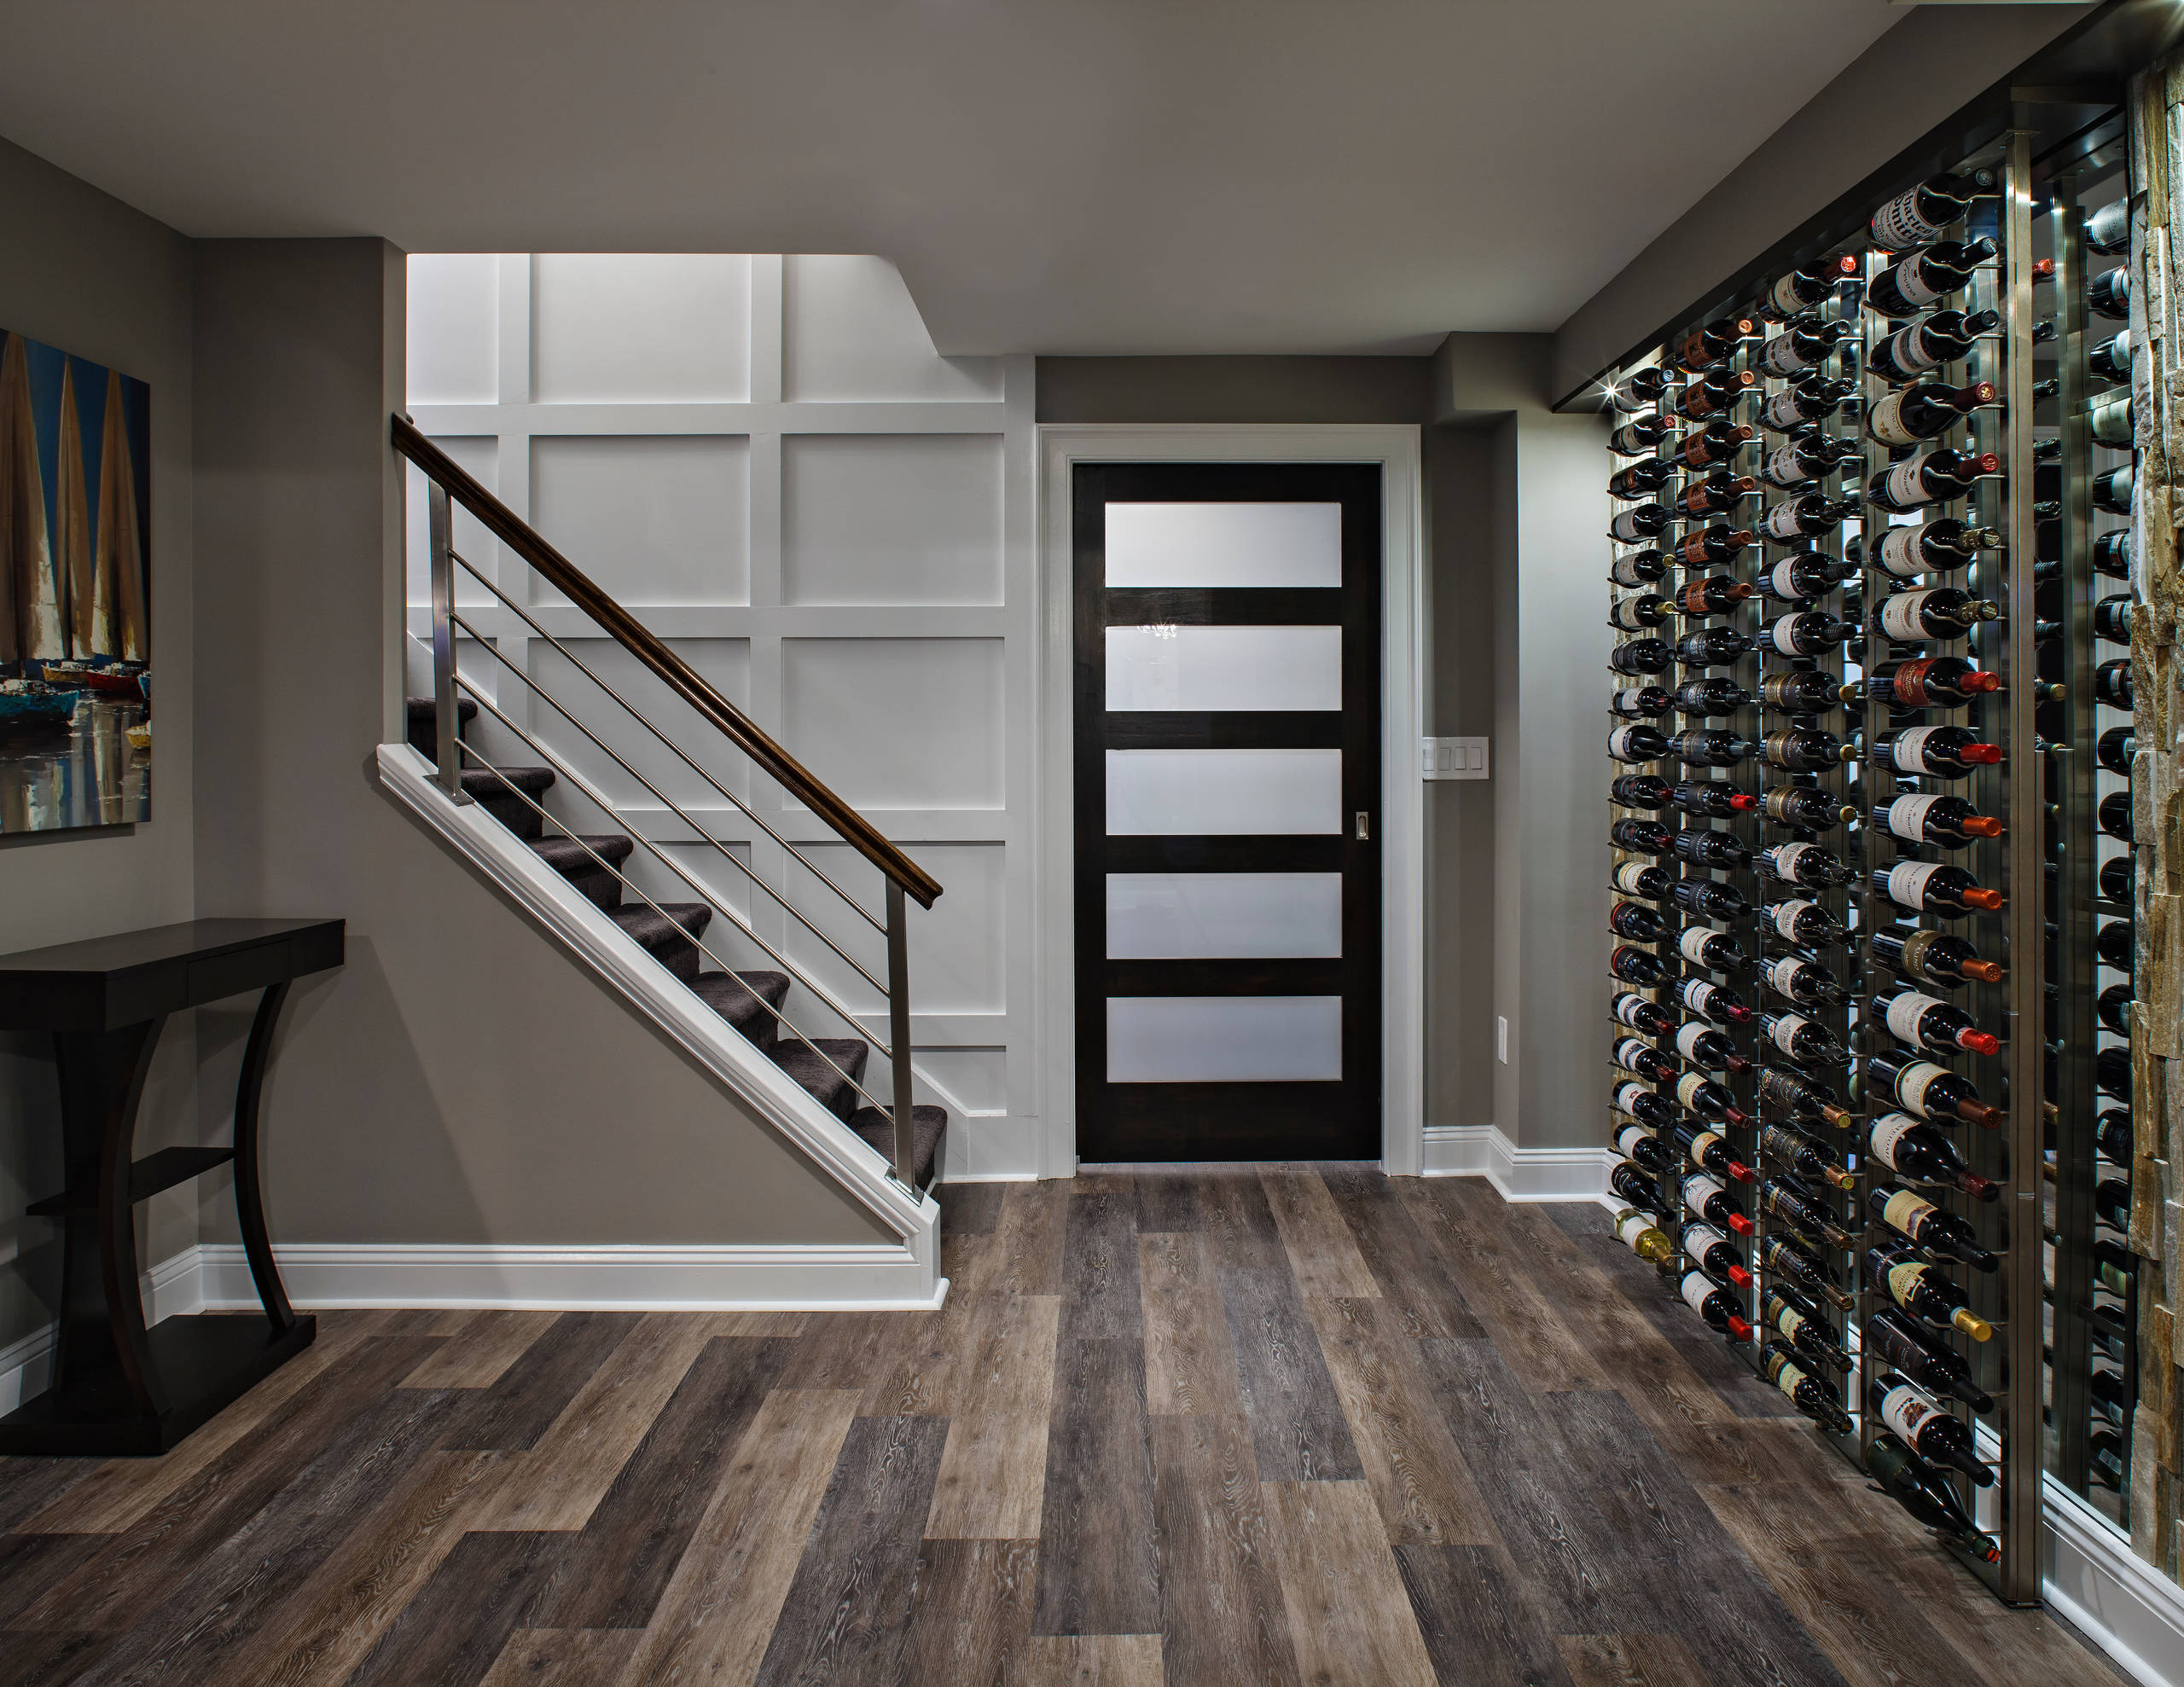 75 Beautiful Basement With Gray Walls Pictures Ideas October 2020 Houzz